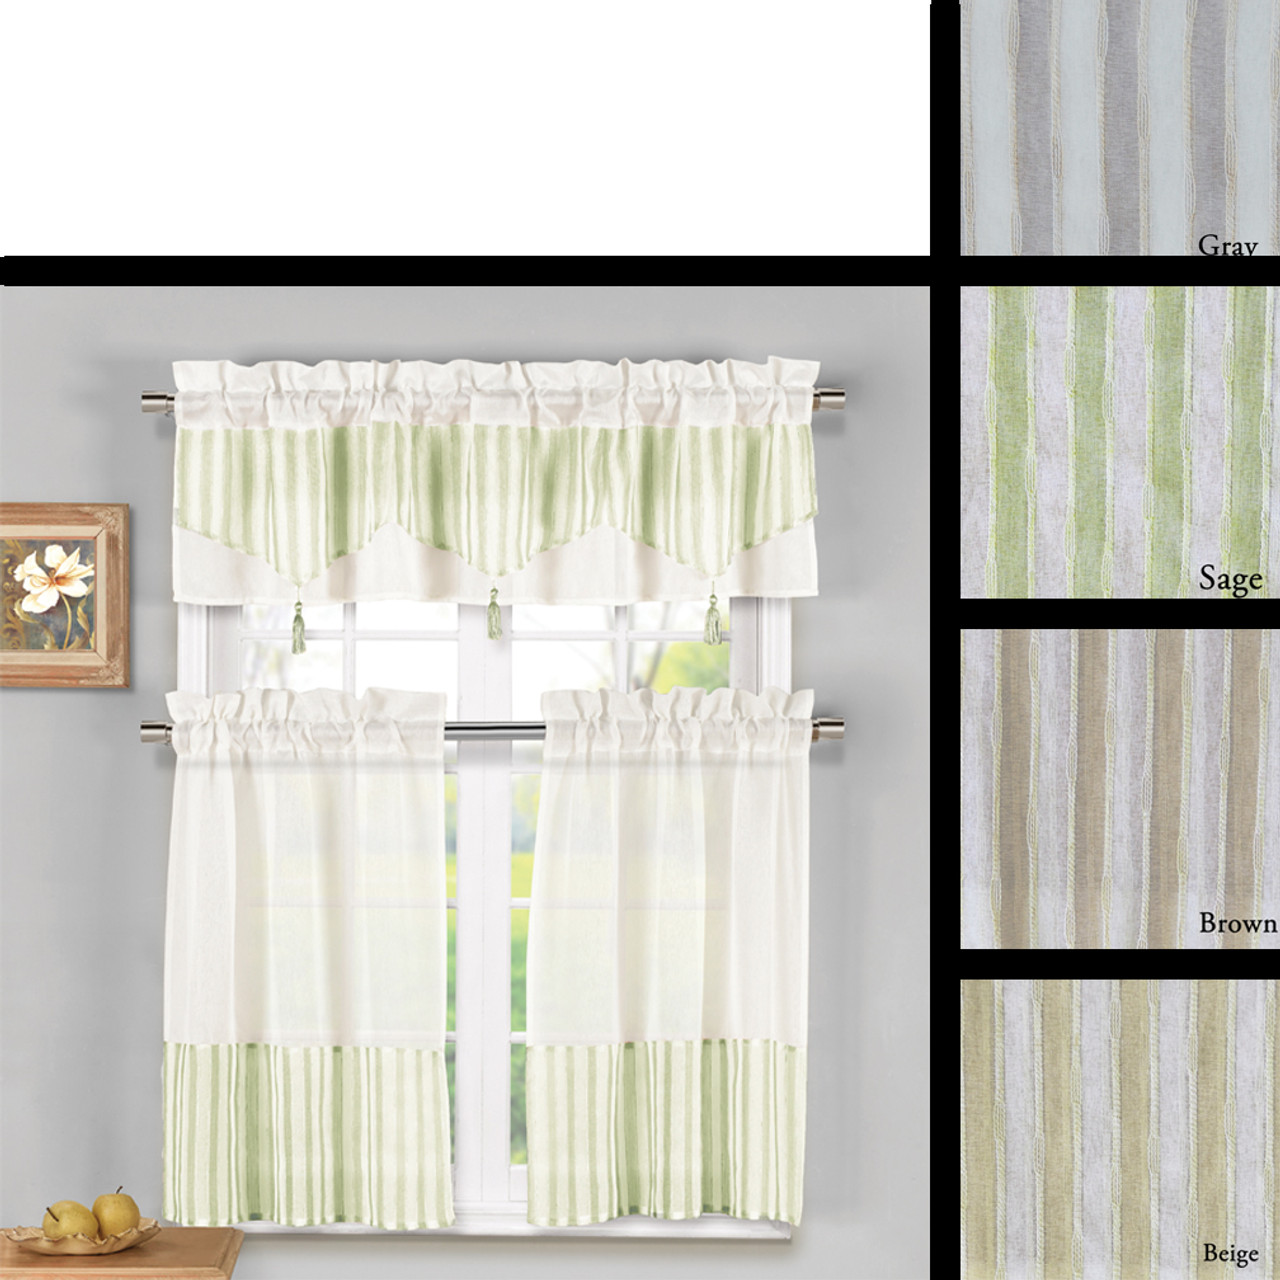 3 Piece Embroidered Sheer Kitchen Window Curtain Set With 1 Tasseled Valance And 2 Tier Panel Curtains My Infinity Store